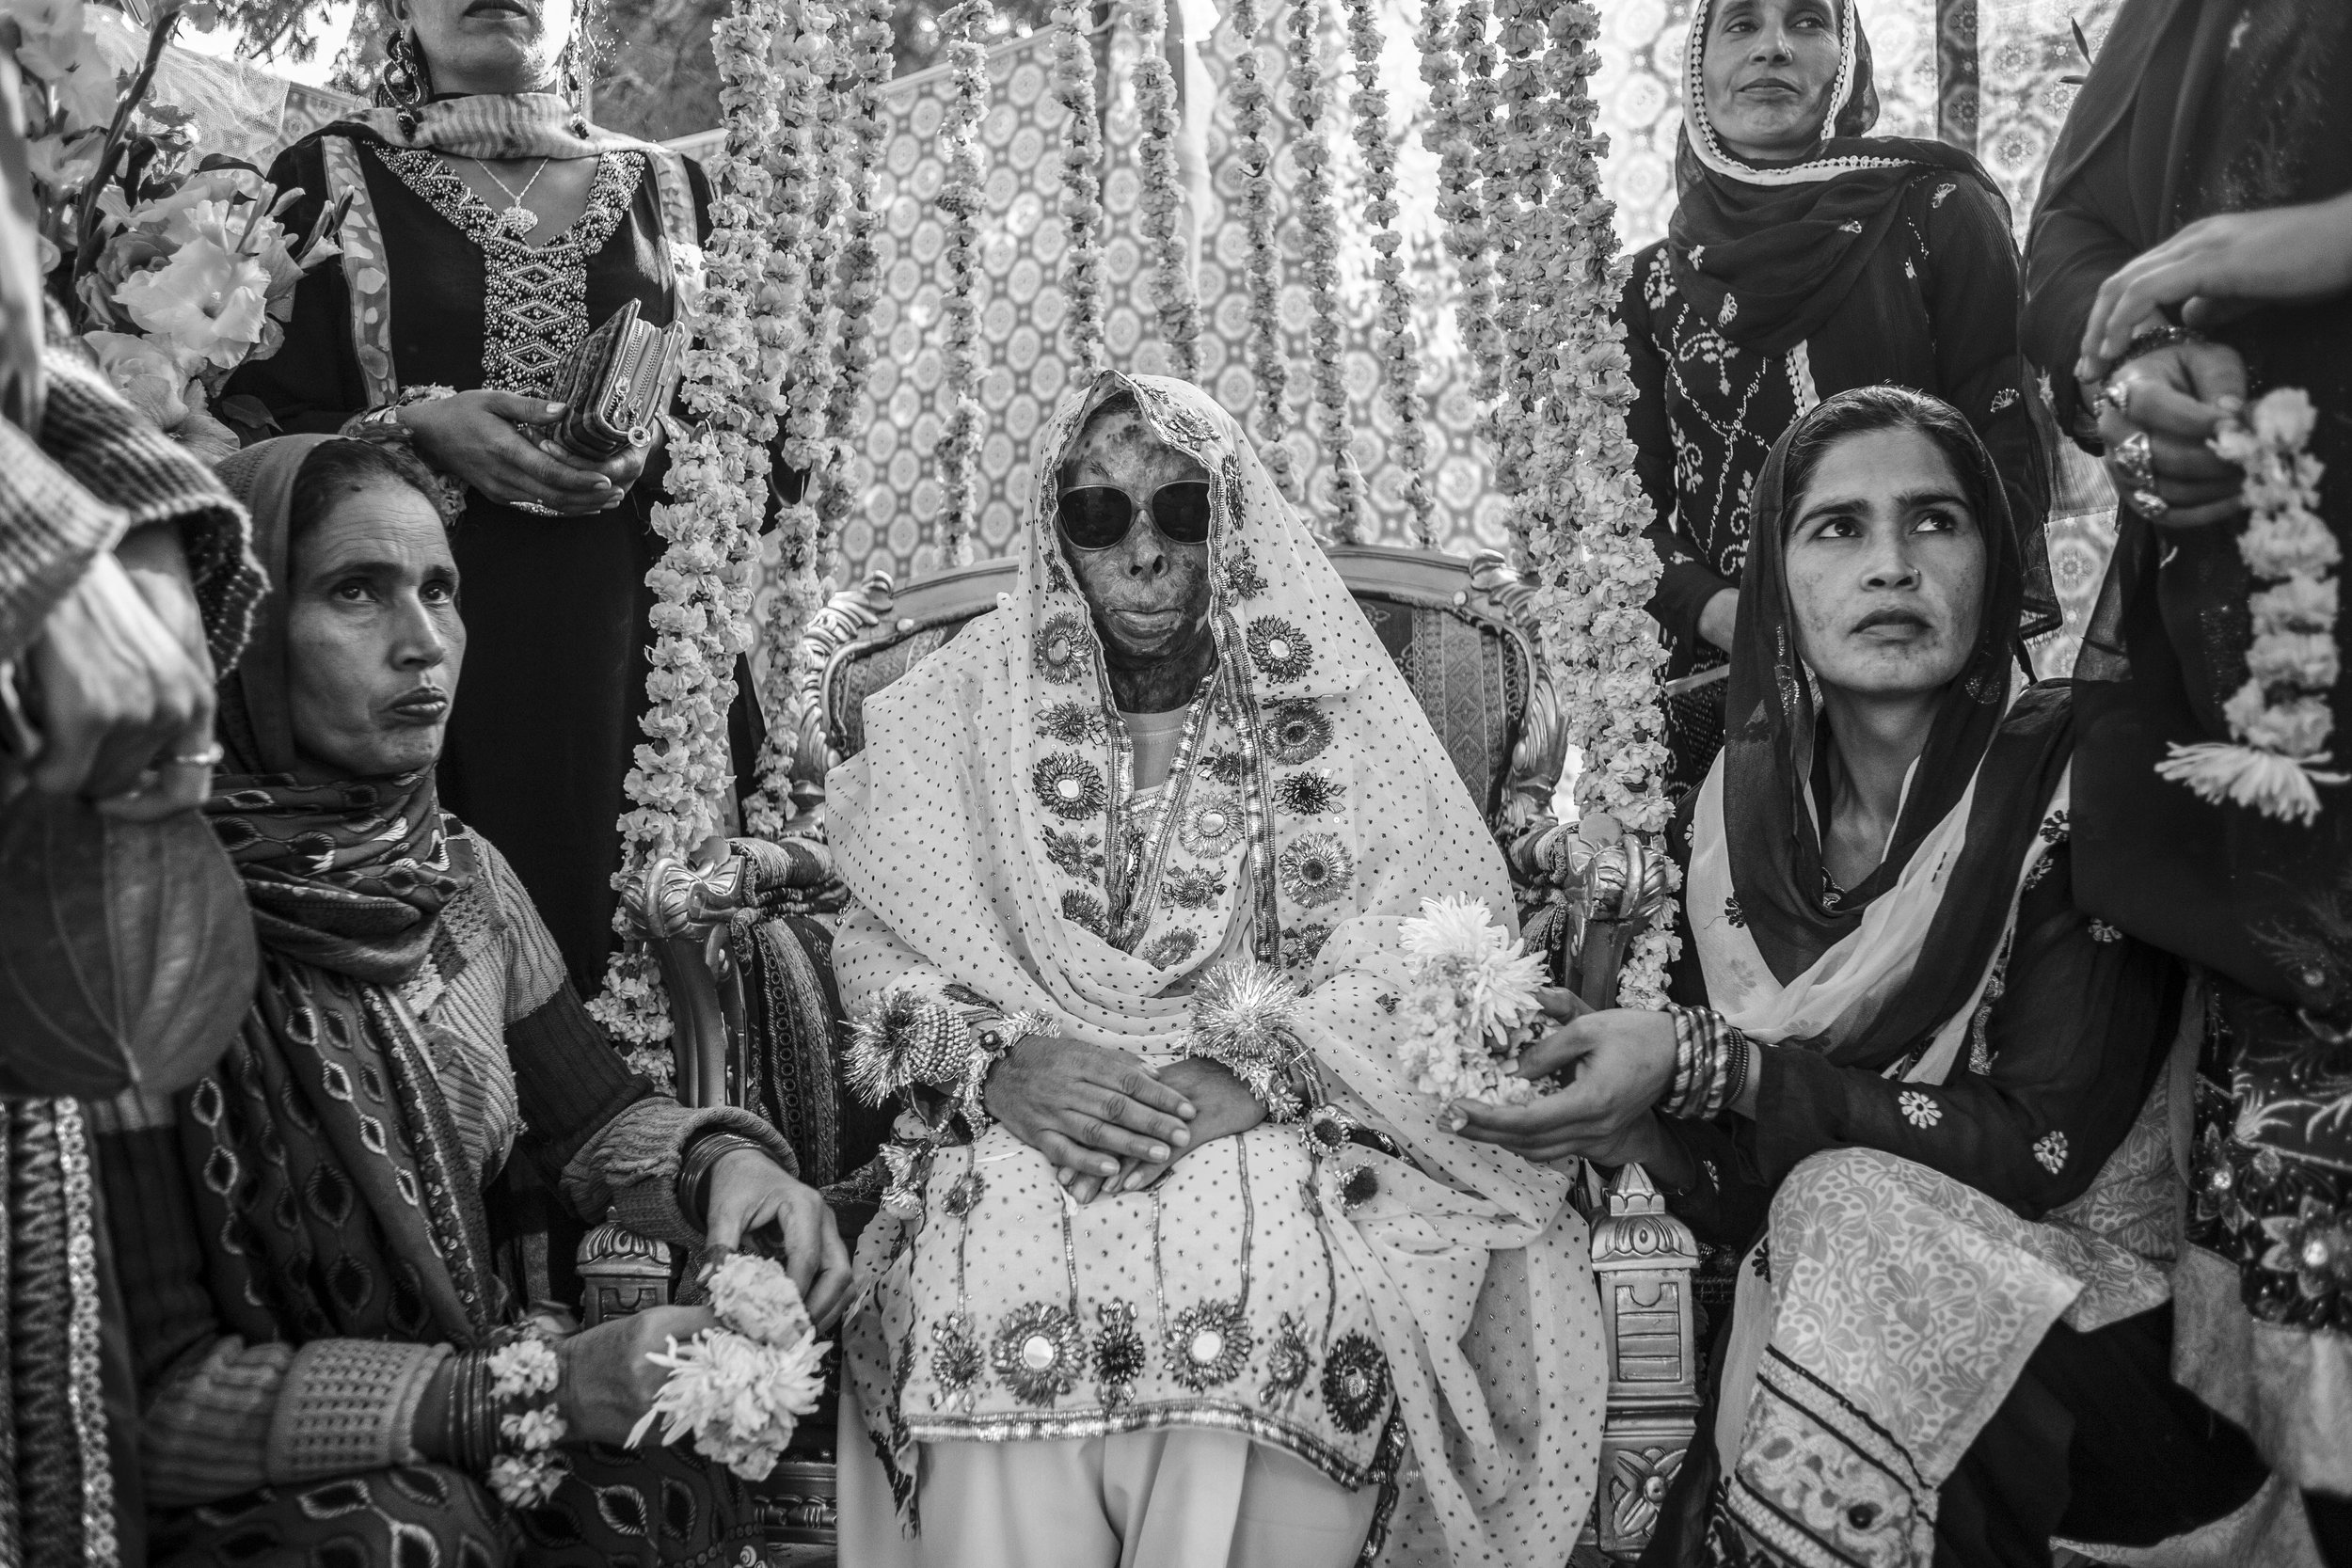 Sarwari Bibi, an acid attack survivor, sits with her sisters at her pre-wedding ceremony on Jan. 7, 2016 in Lahore, Pakistan.